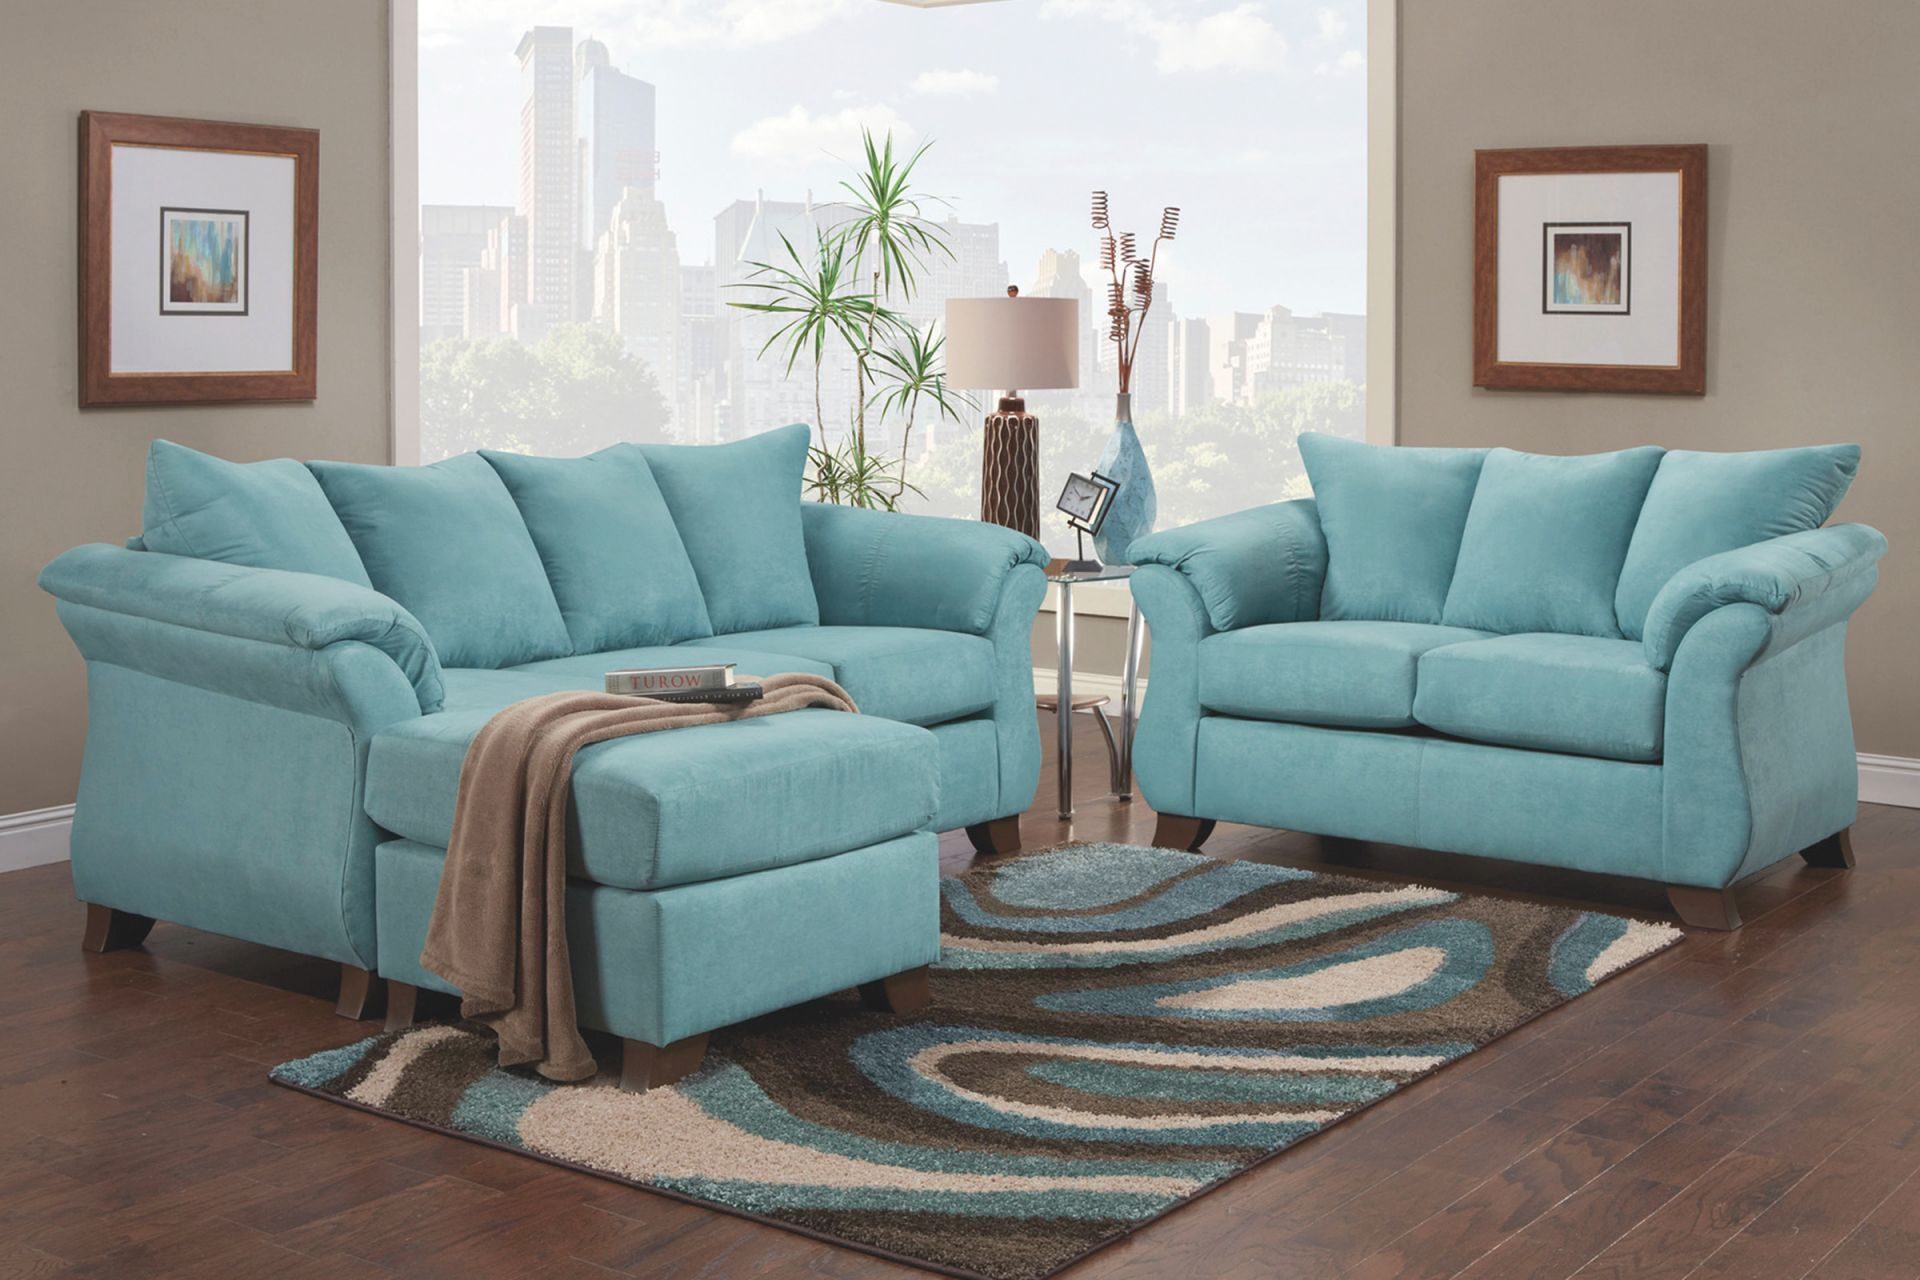 Taffy Living Room Collection with regard to Teal Living Room Furniture